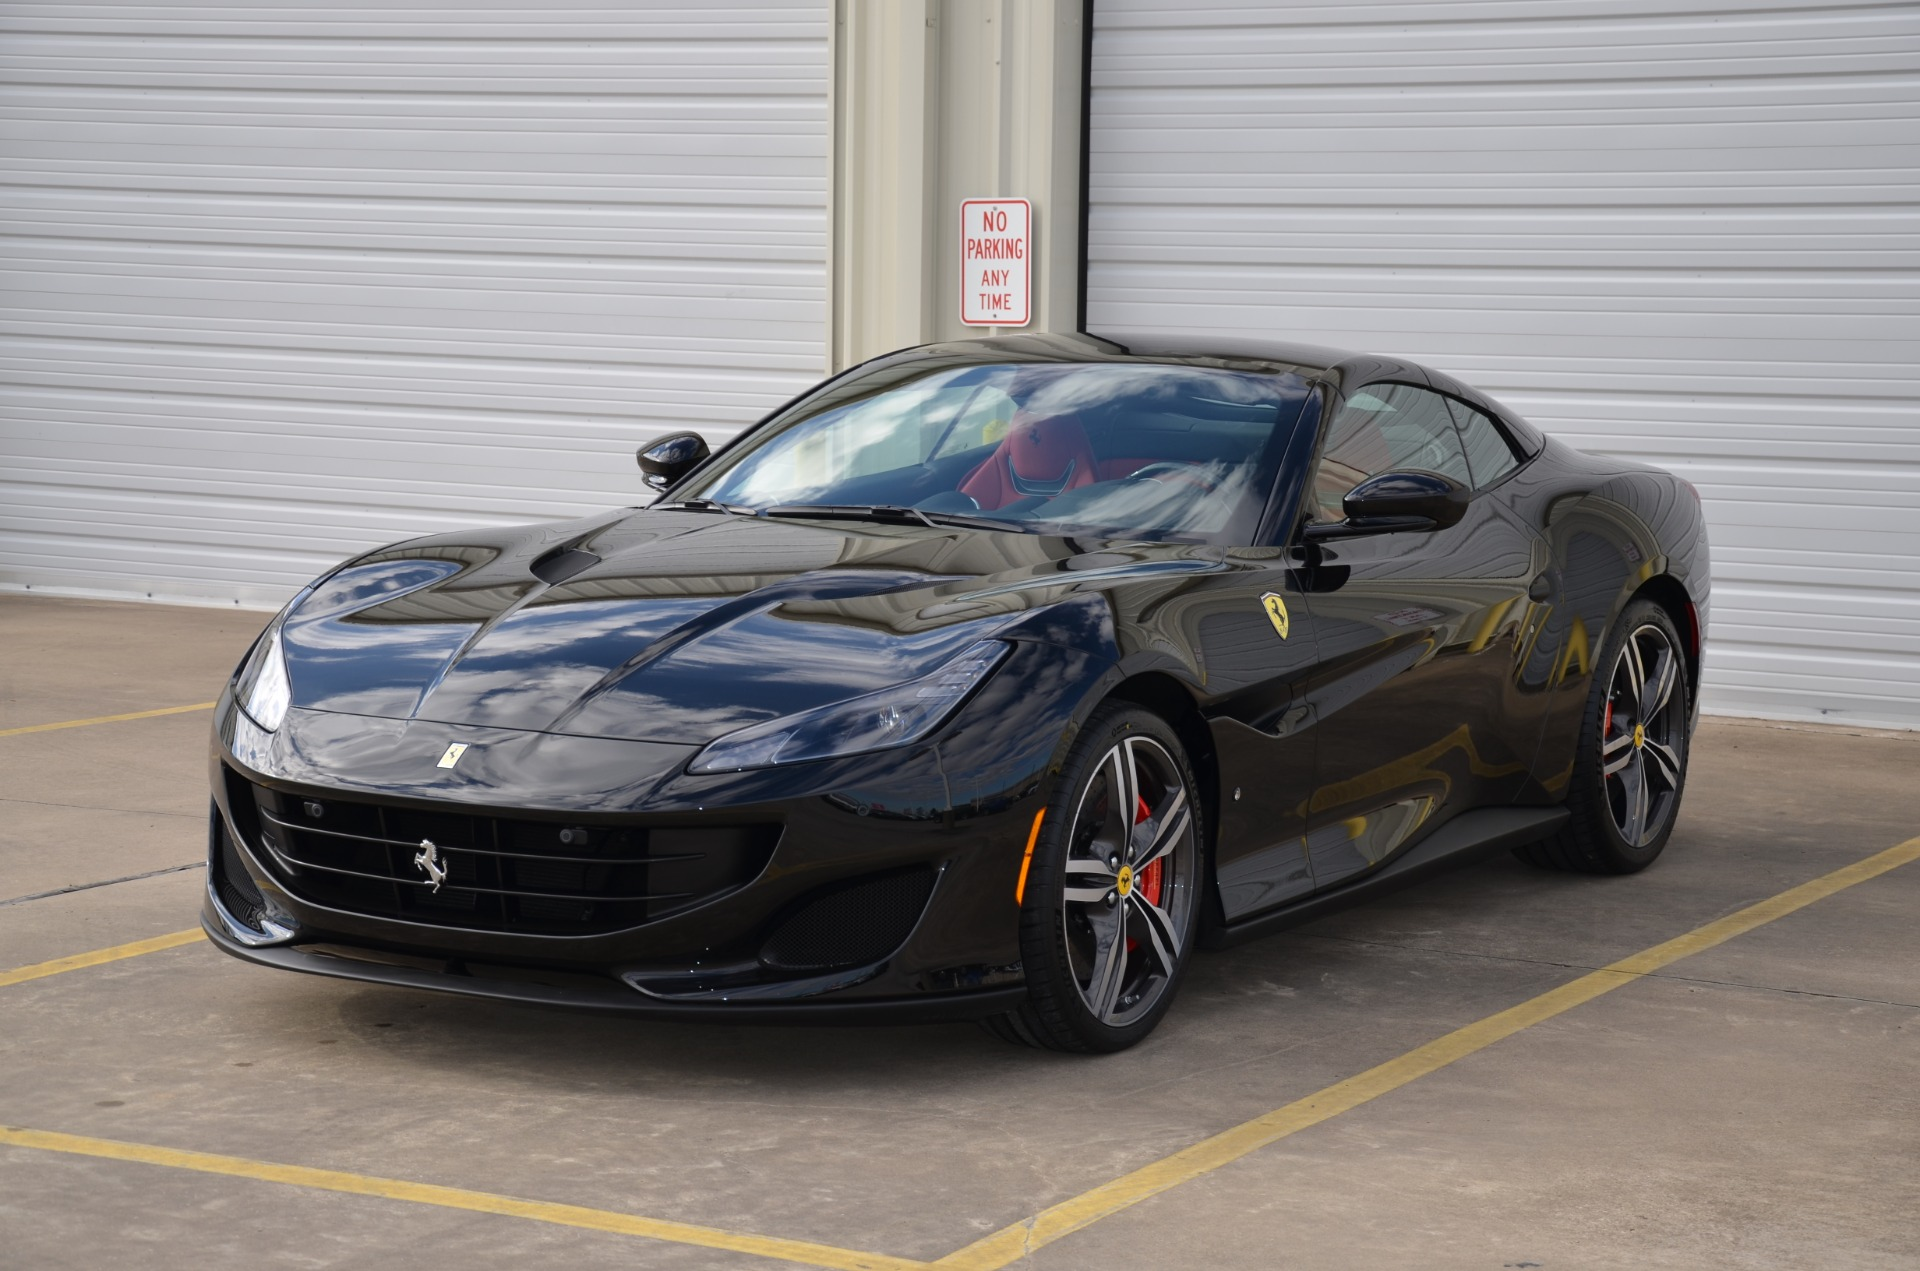 Used 2019 Ferrari Portofino For Sale ($257,690) | BJ ...